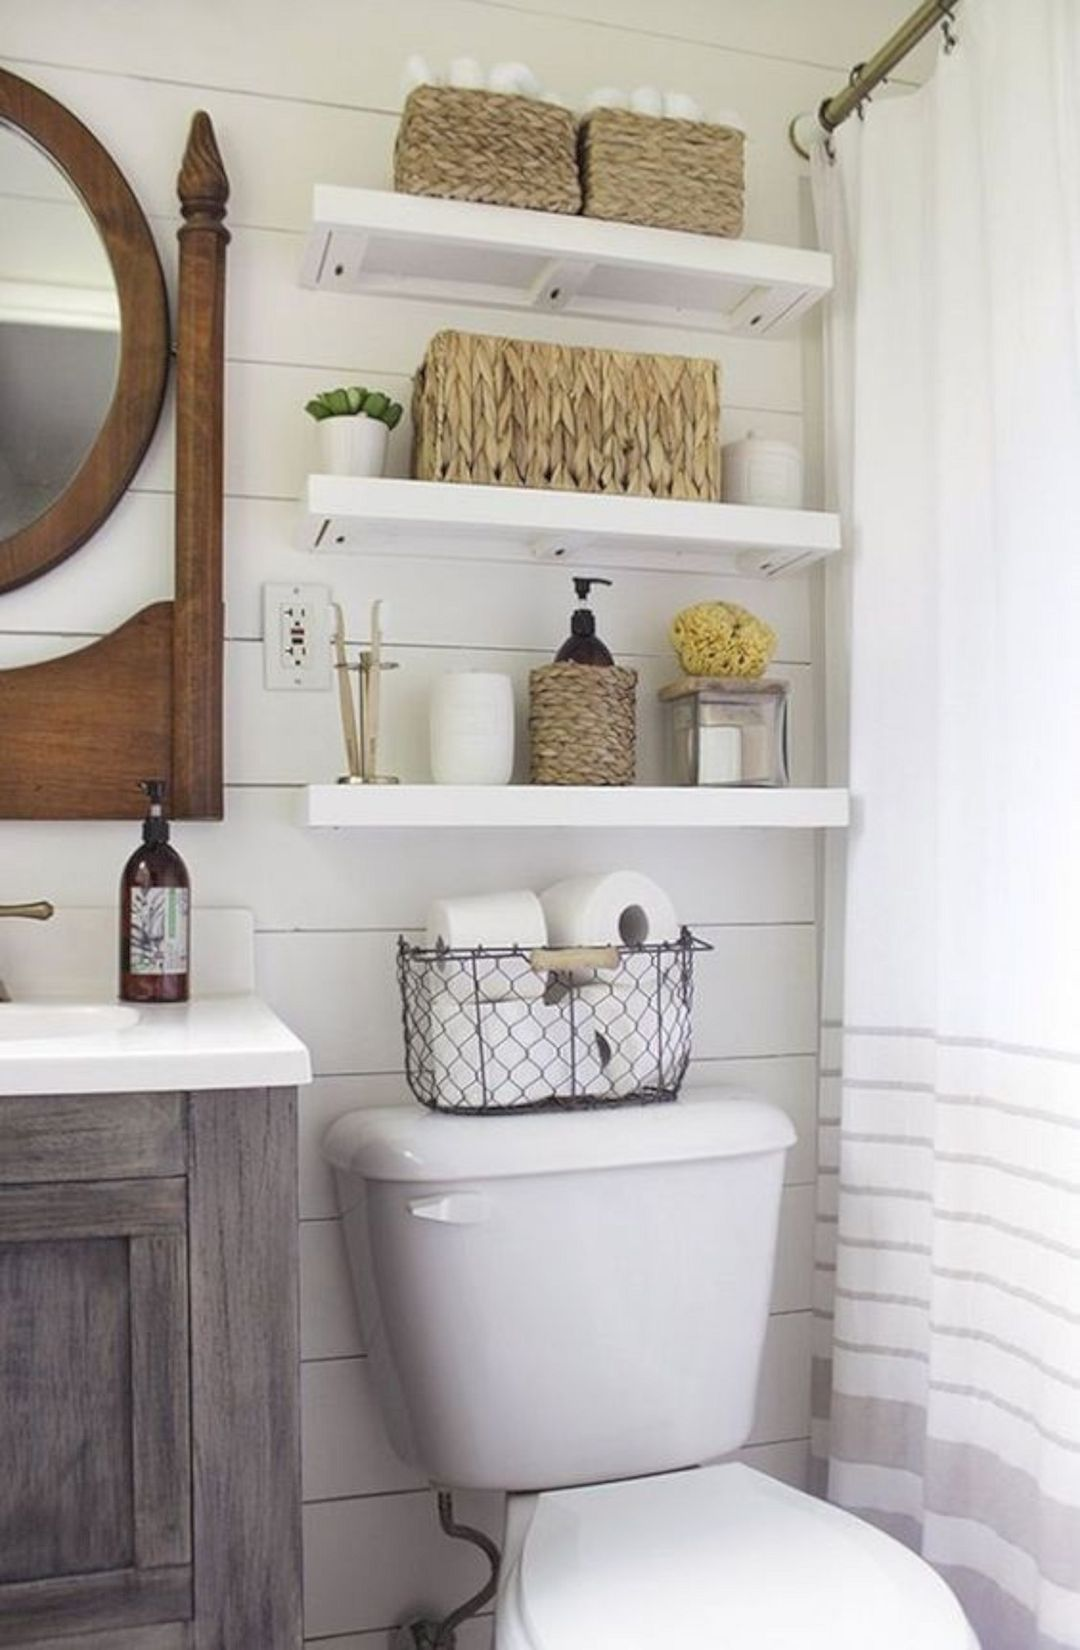 Small Bathroom Decorating Ideas Made Simple - darbylanefurniture.com